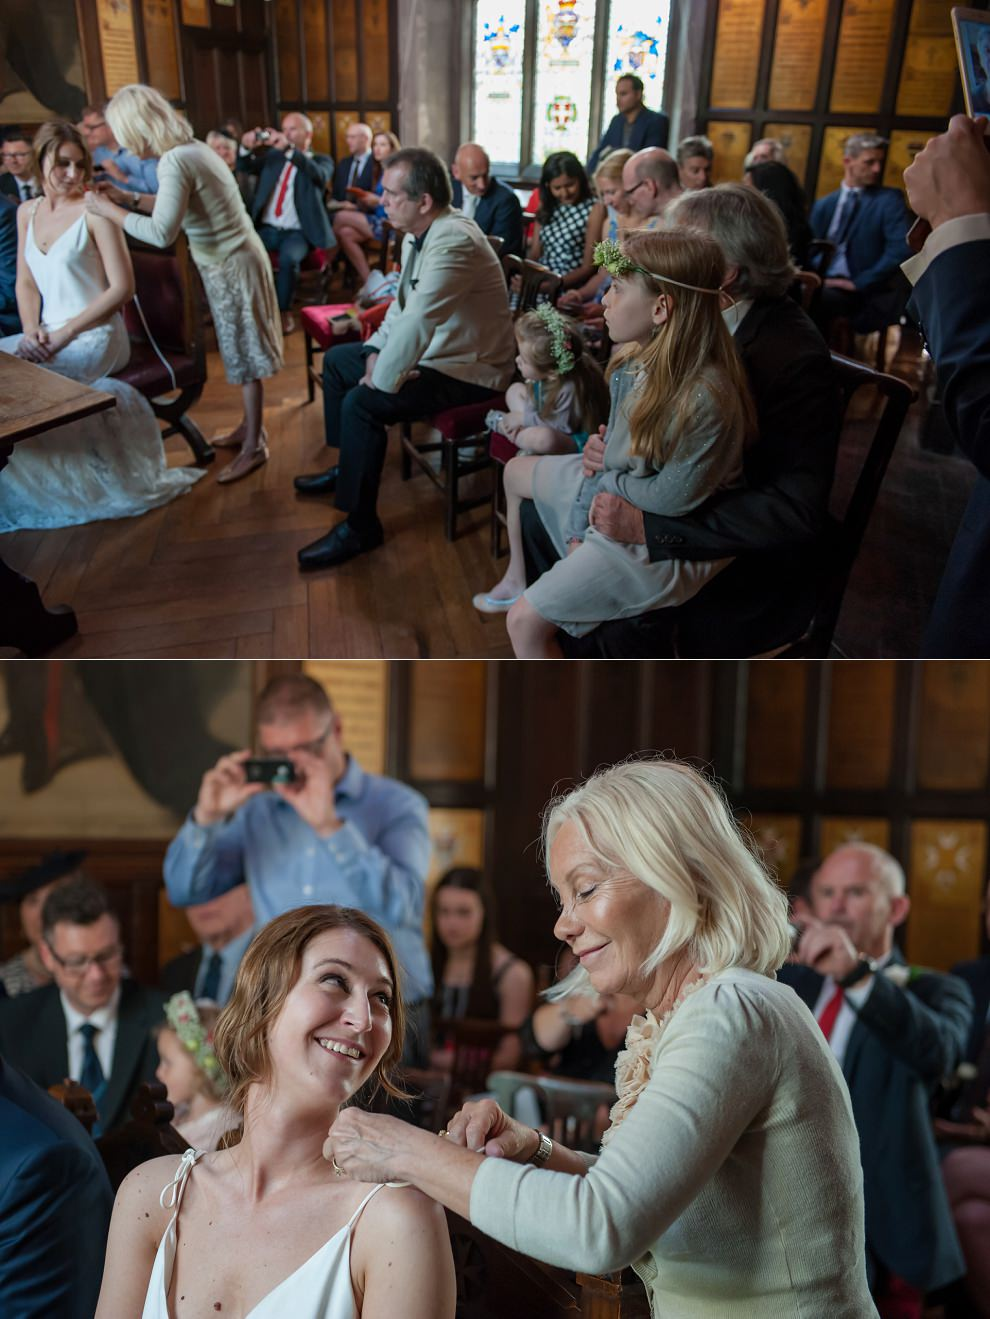 Documentary wedding photography - real moments